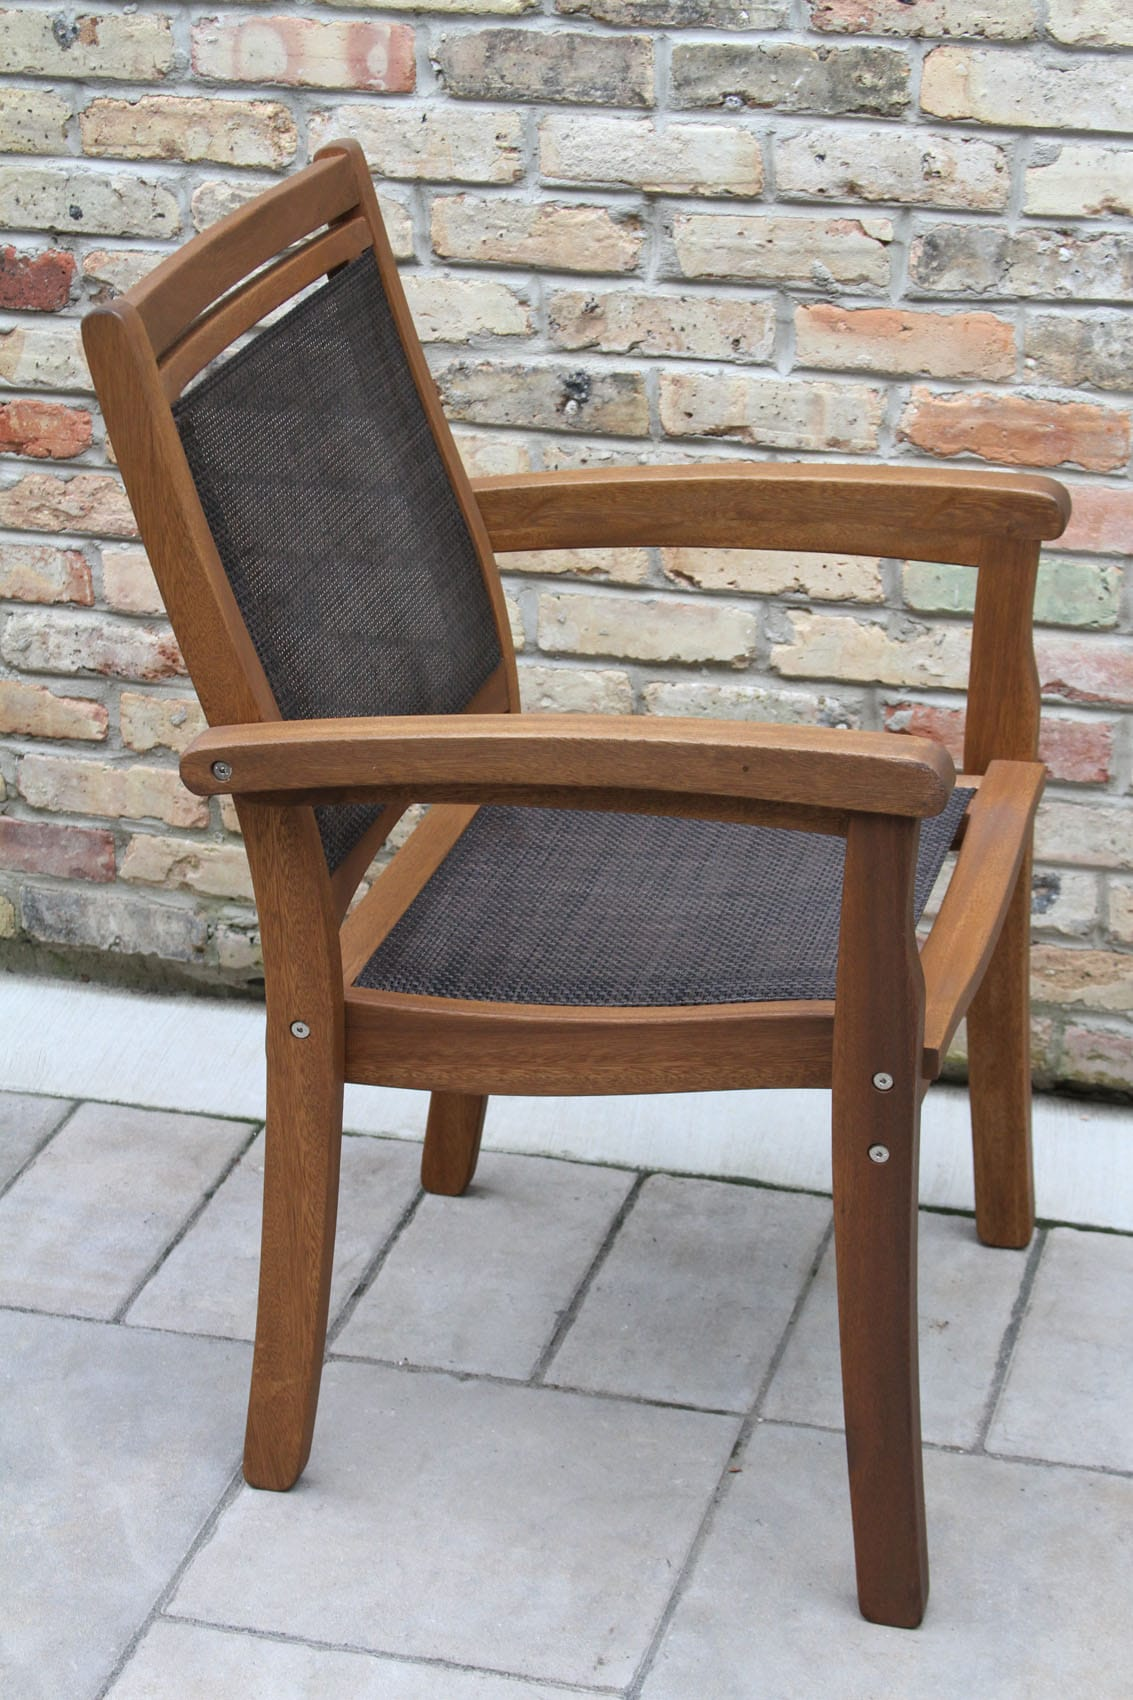 sling stackable patio chairs chair kneel stool eucalyptus wood and brown arm